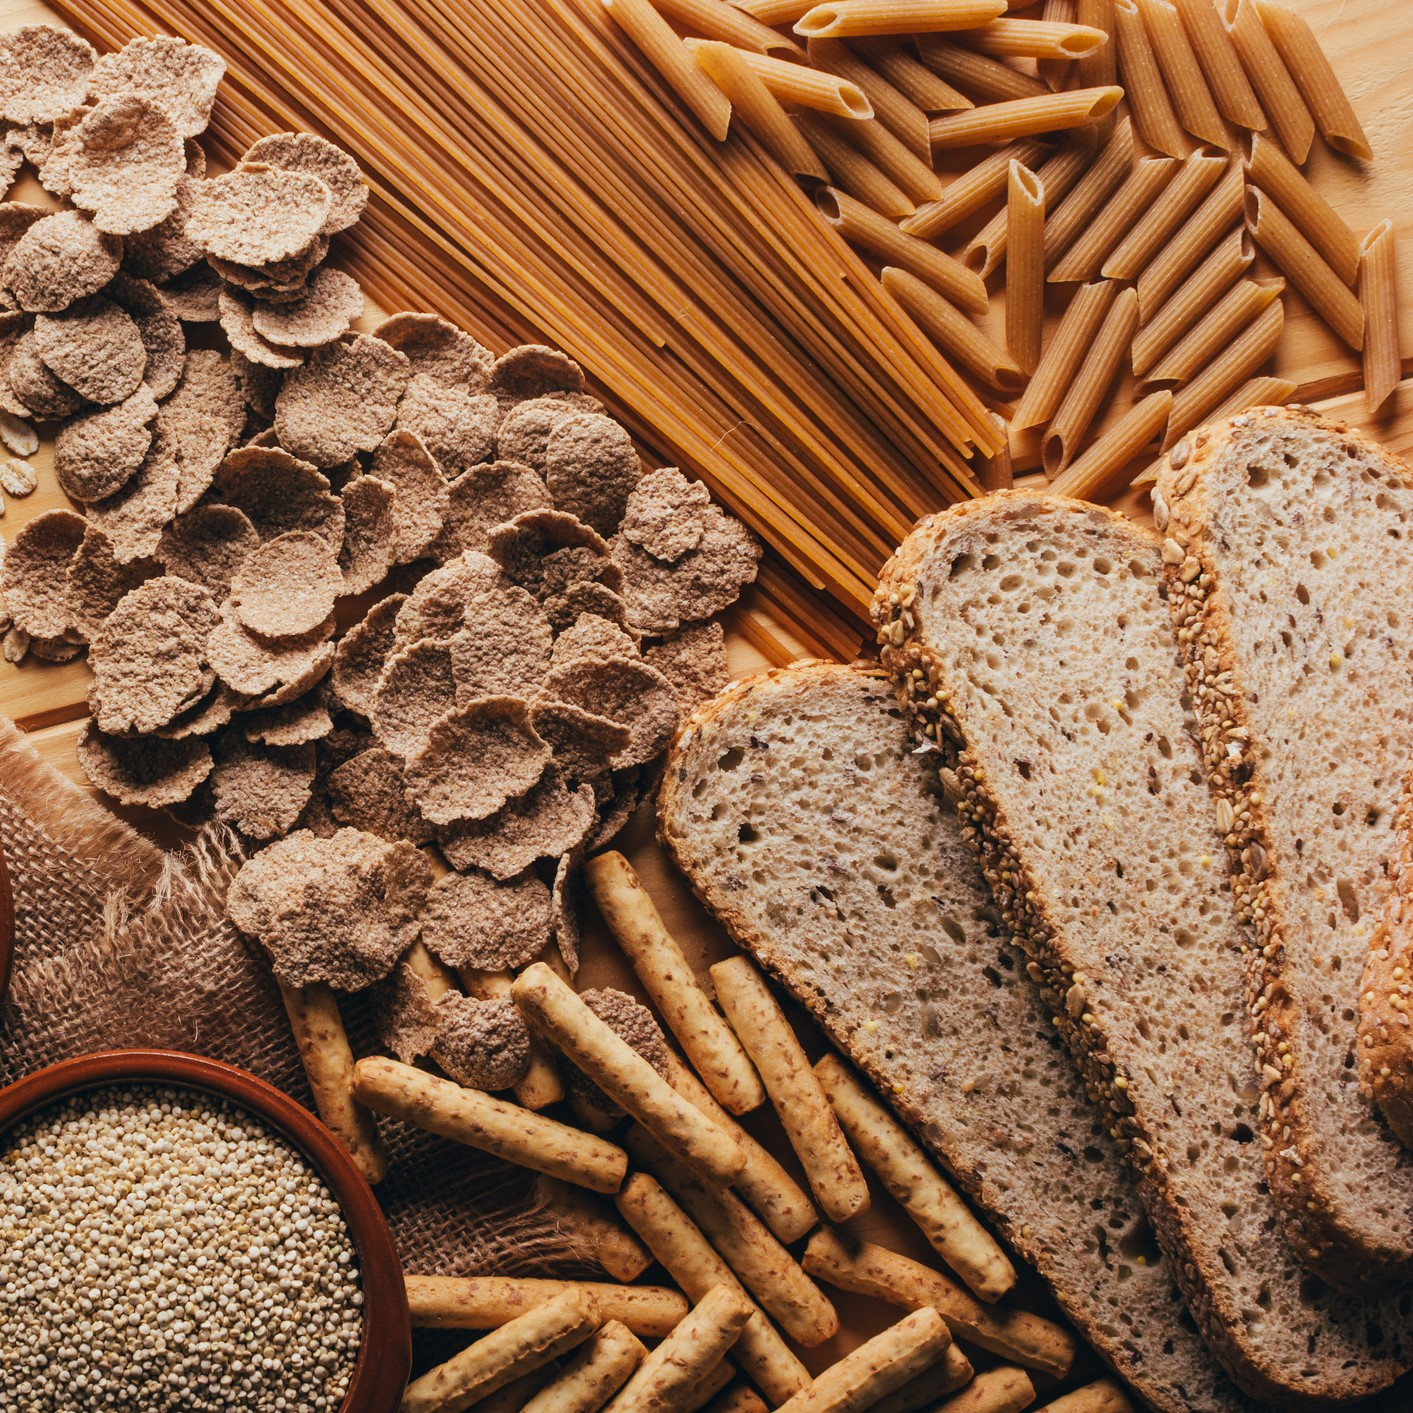 Table full of grains and other wheat sources